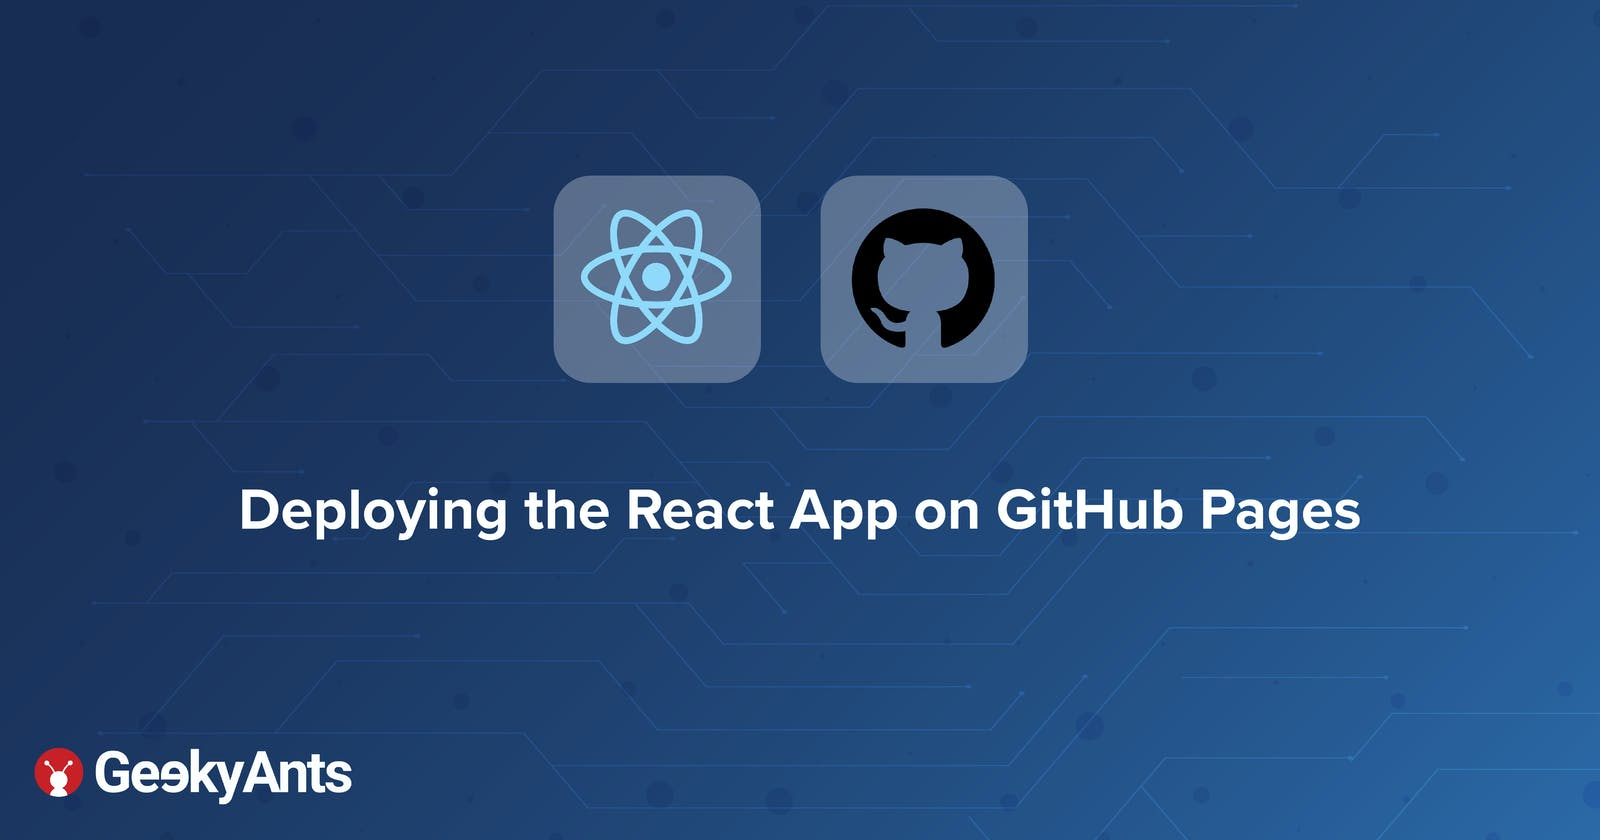 Deploying the React App on GitHub Pages